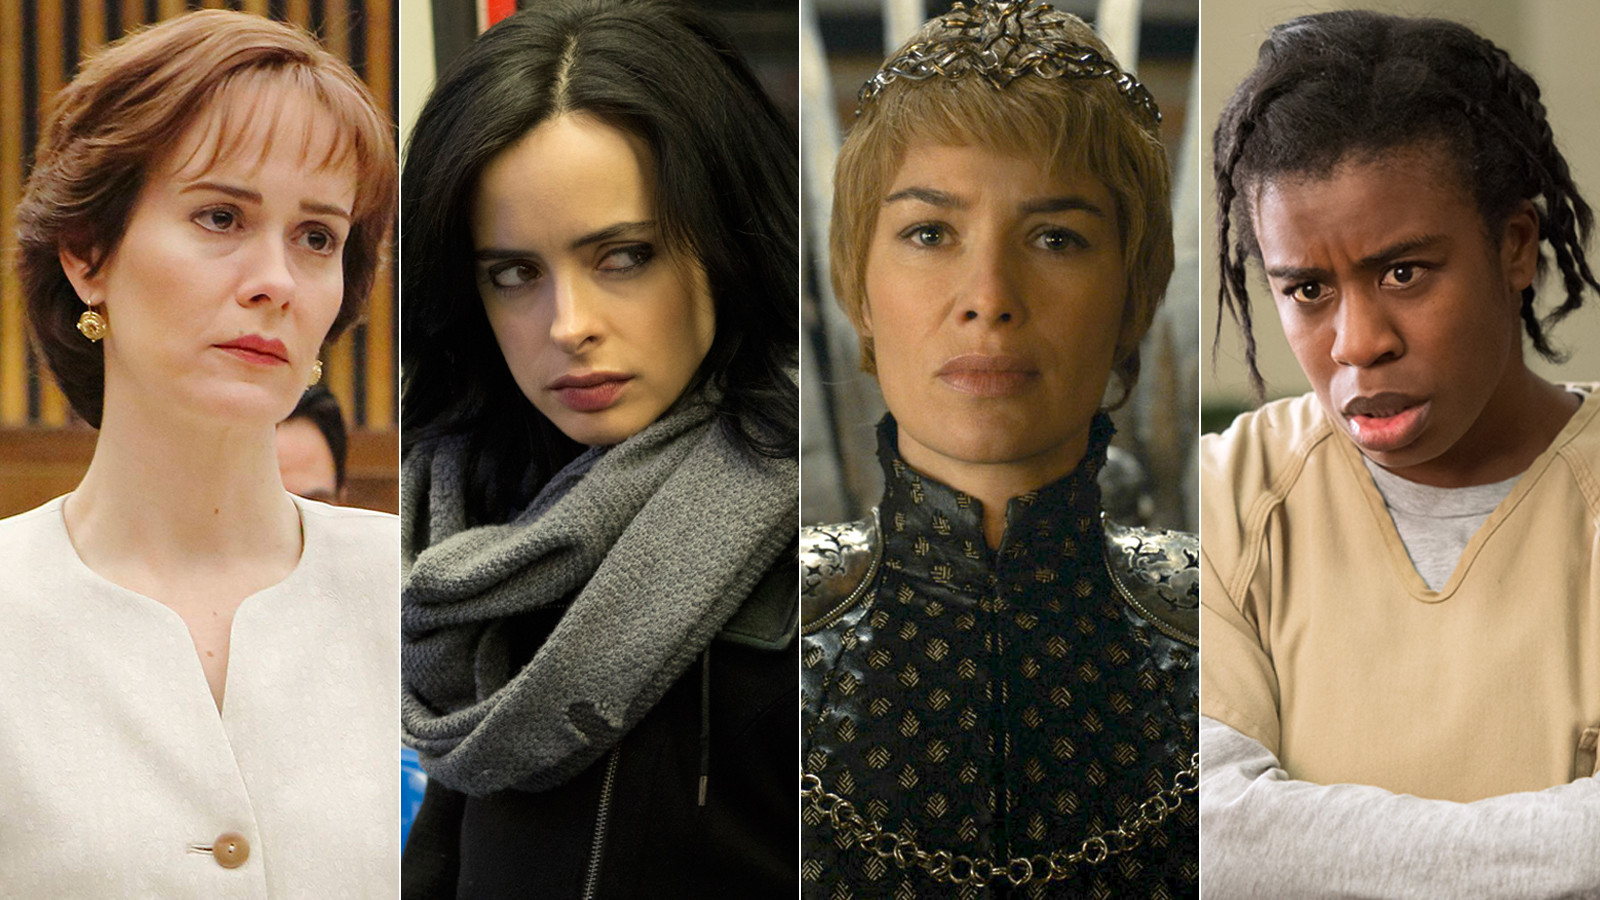 Anger is an energy for a new wave of women in pop culture